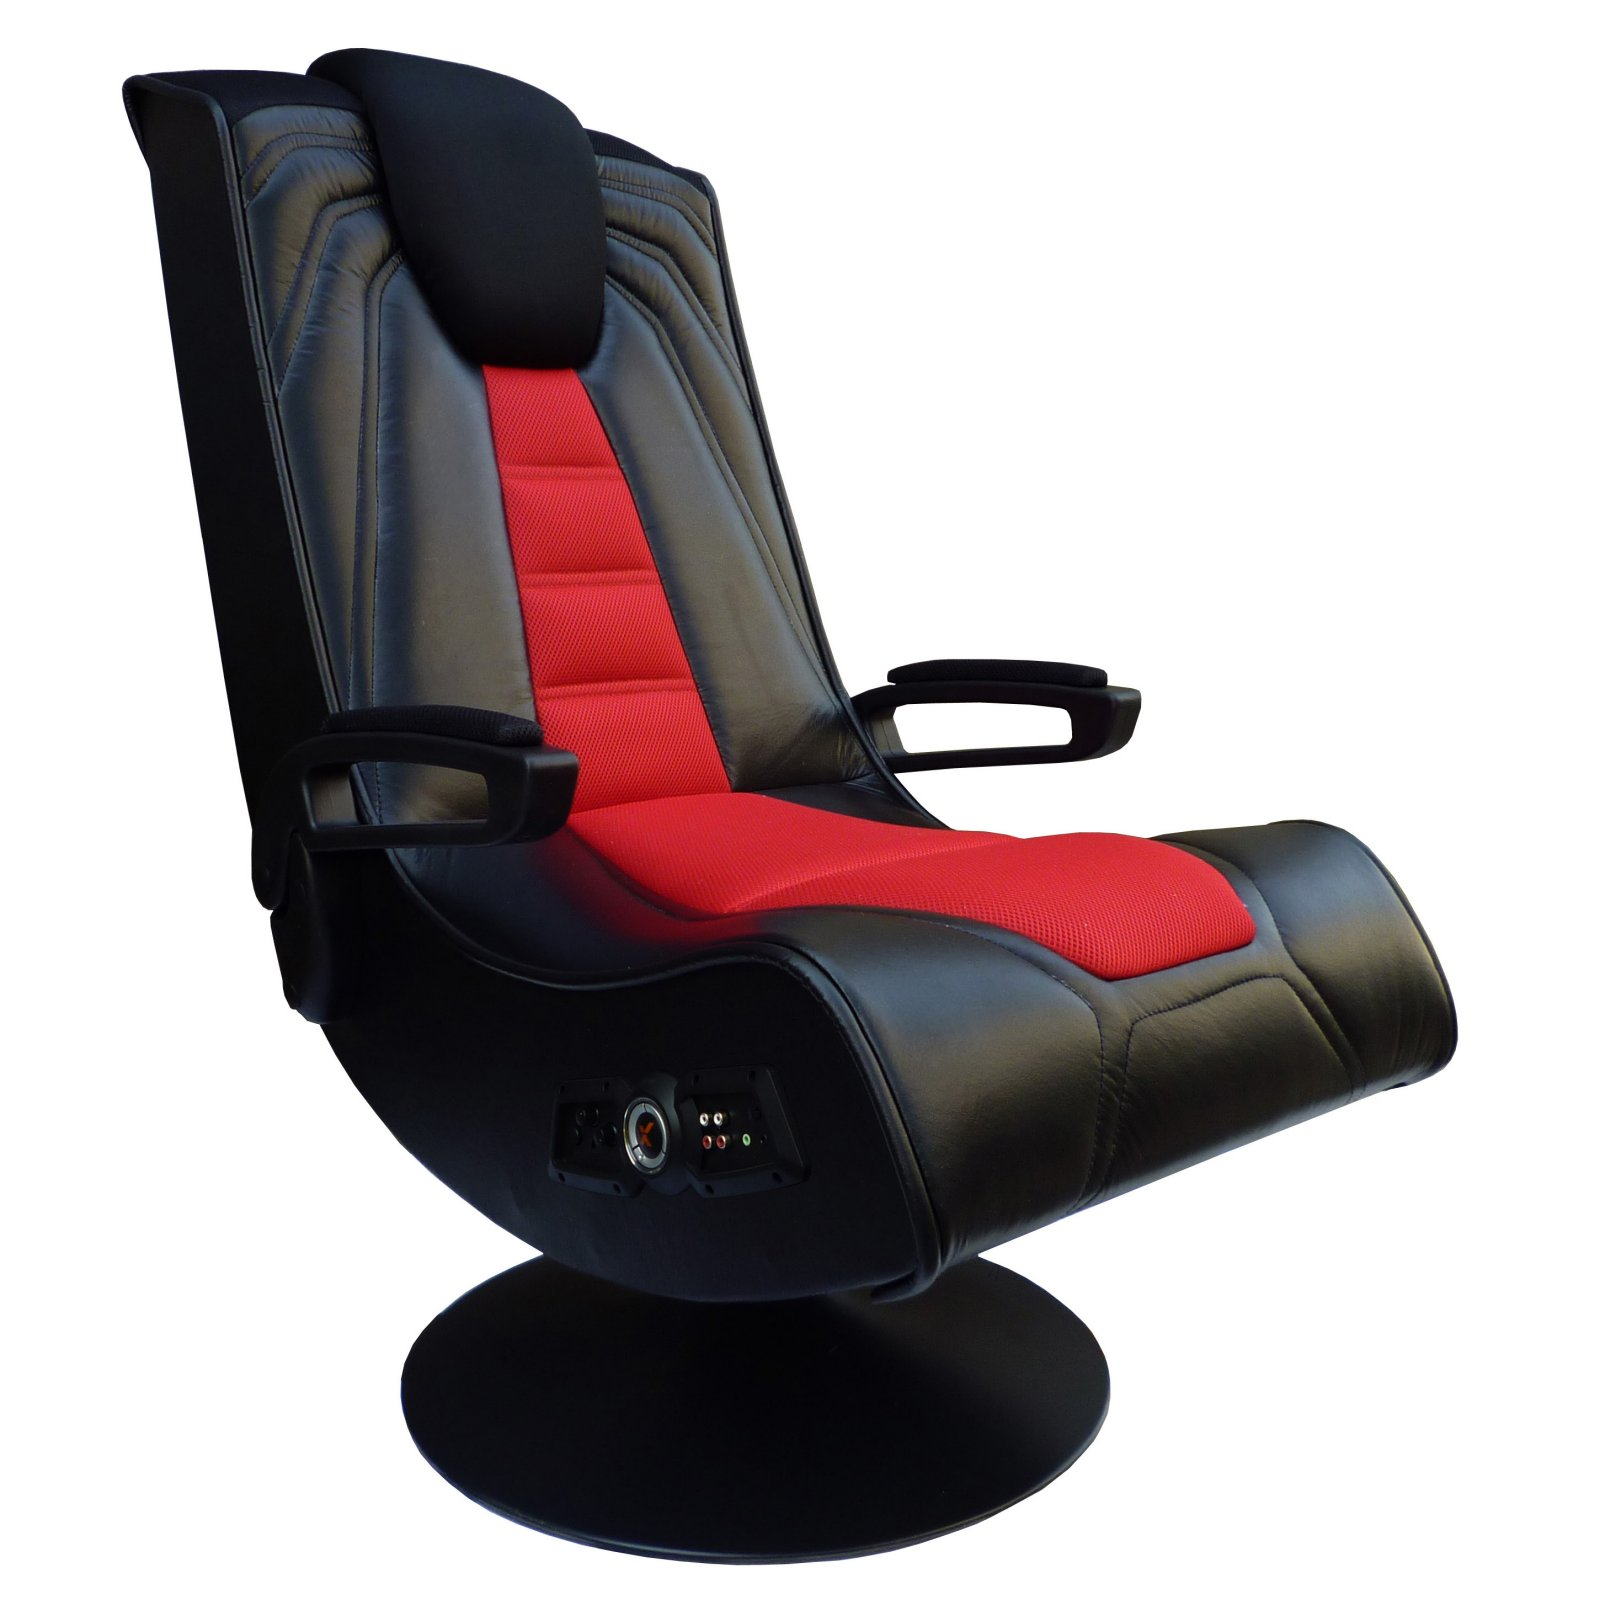 Untested Xrocker Gaming Chair Returns N08